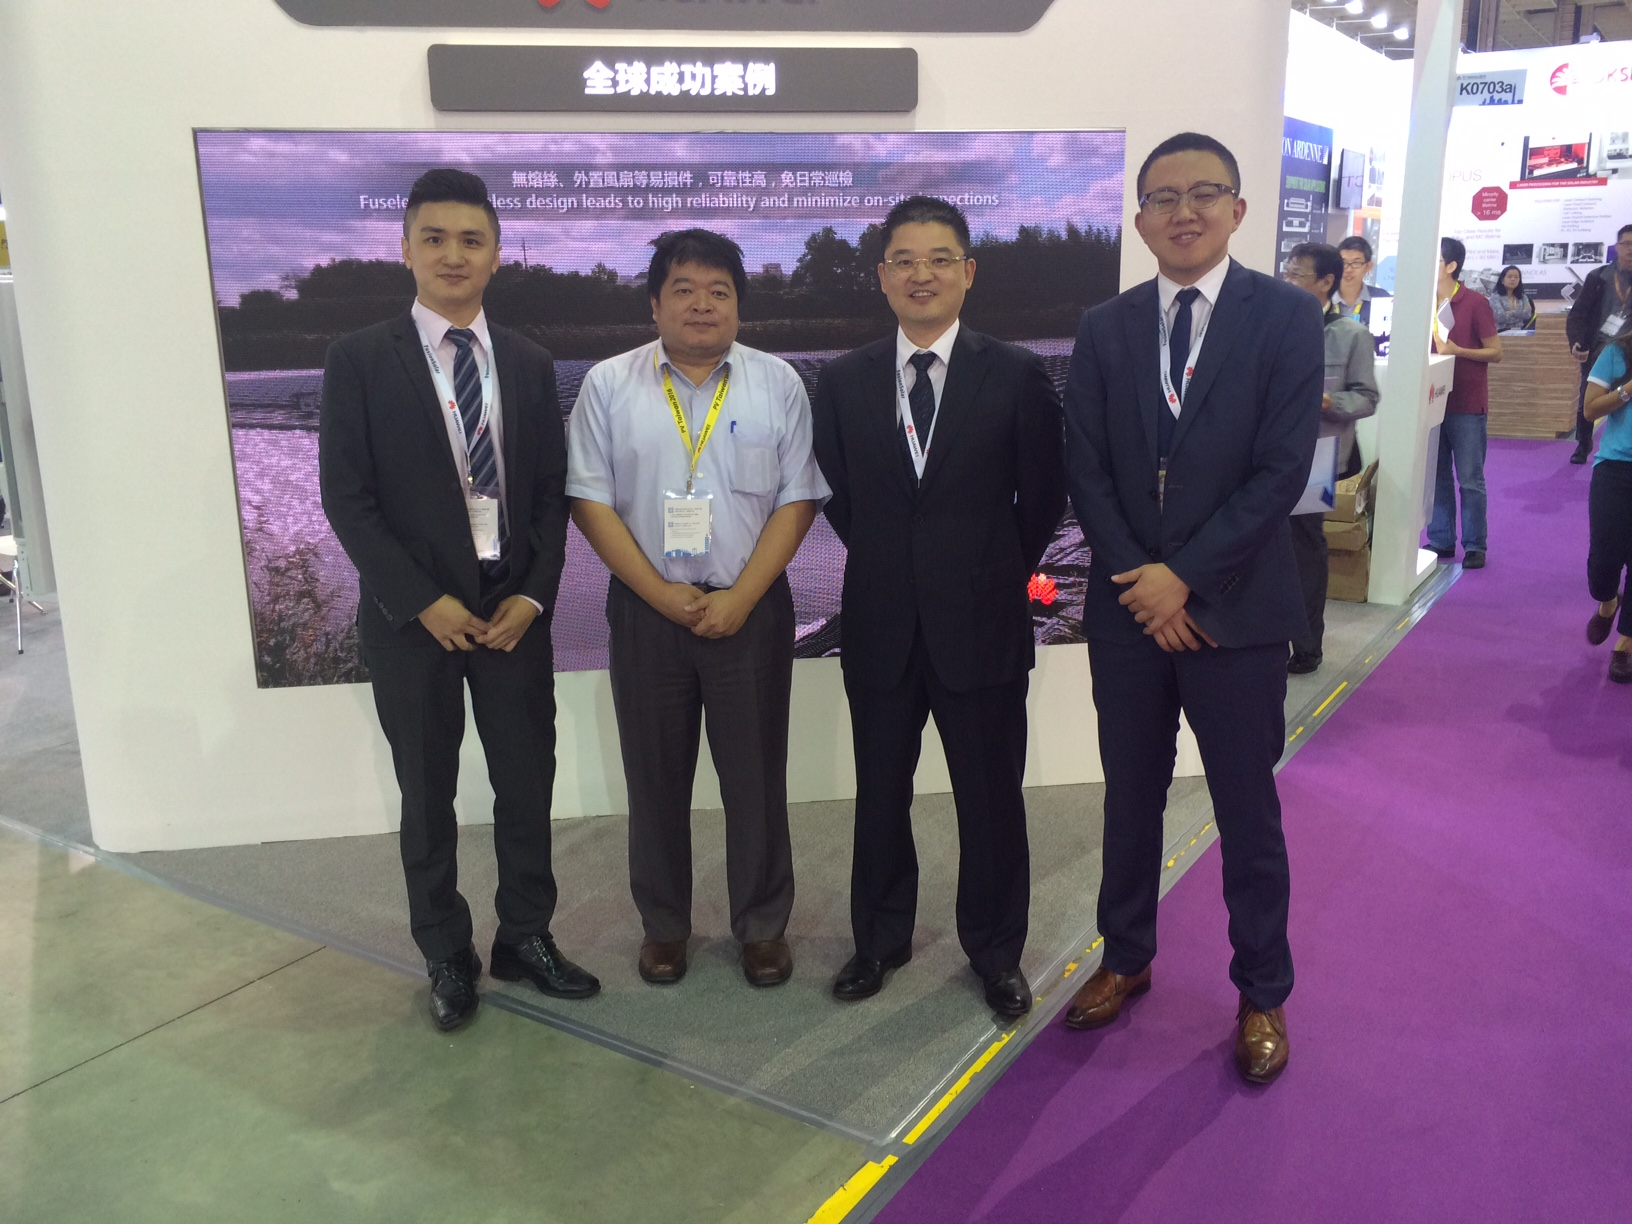 Members of the Huawei team and SAS sunrise at the PV Taiwan exhibition. credit: Tom Kenning